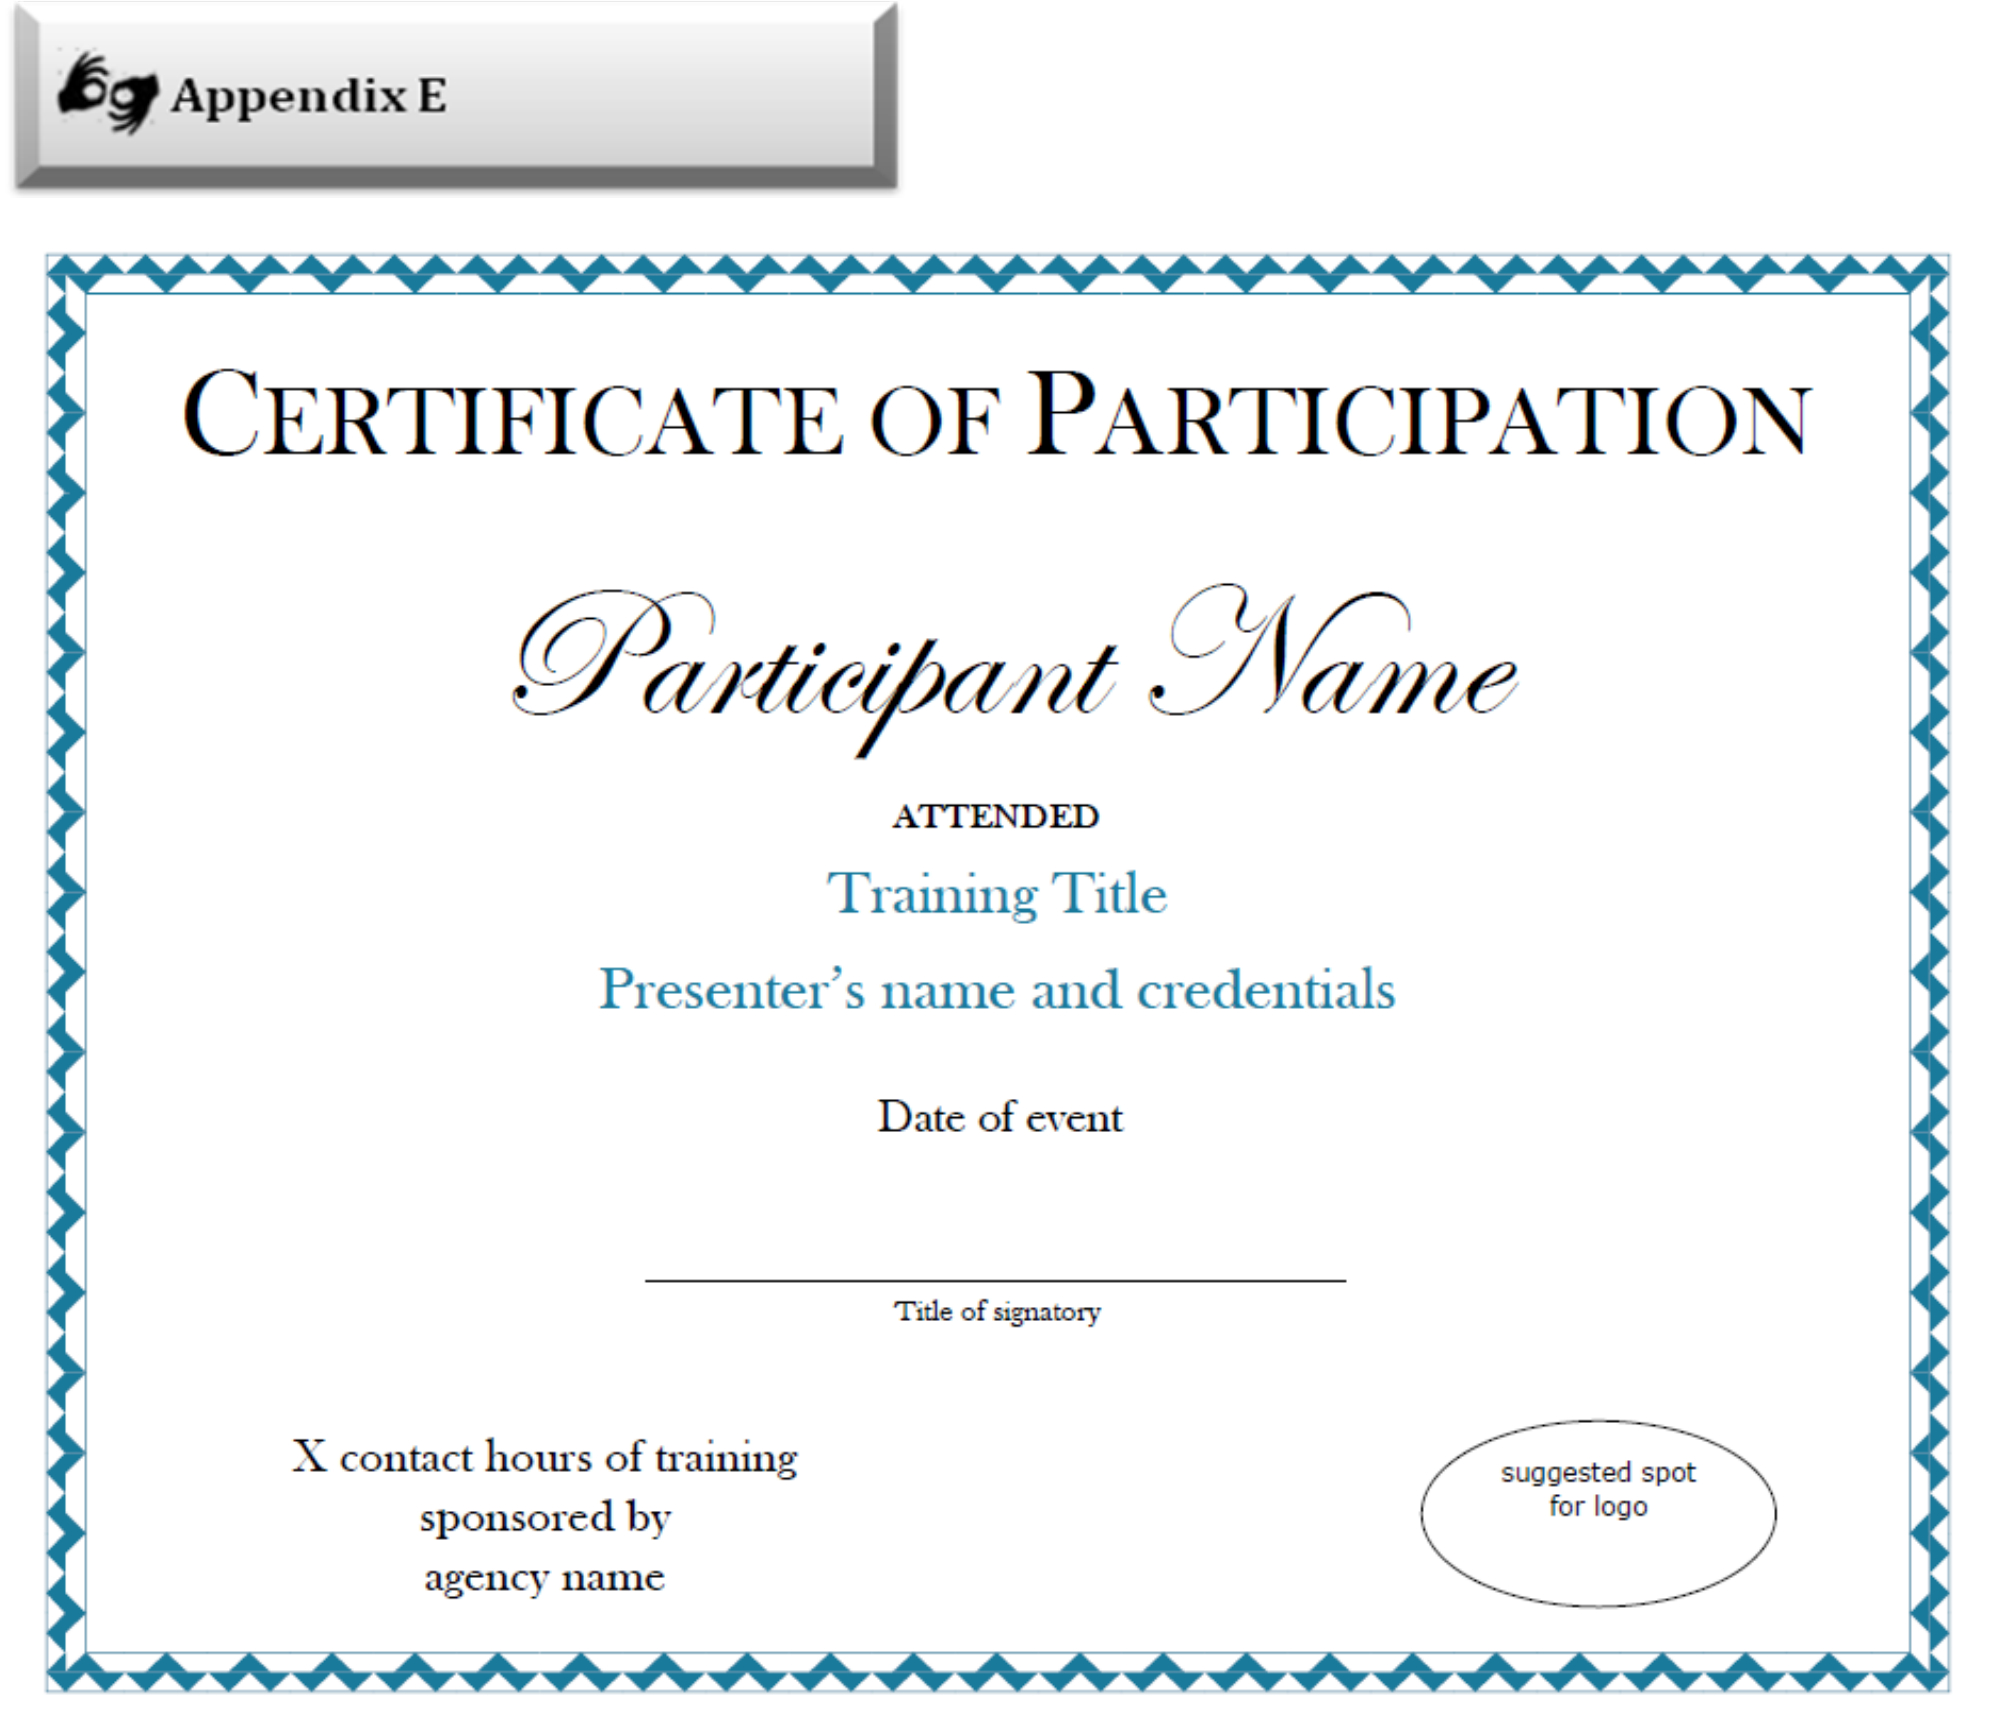 Certificate Of Participation Sample Free Download Within Sample Certificate Of Participation Template